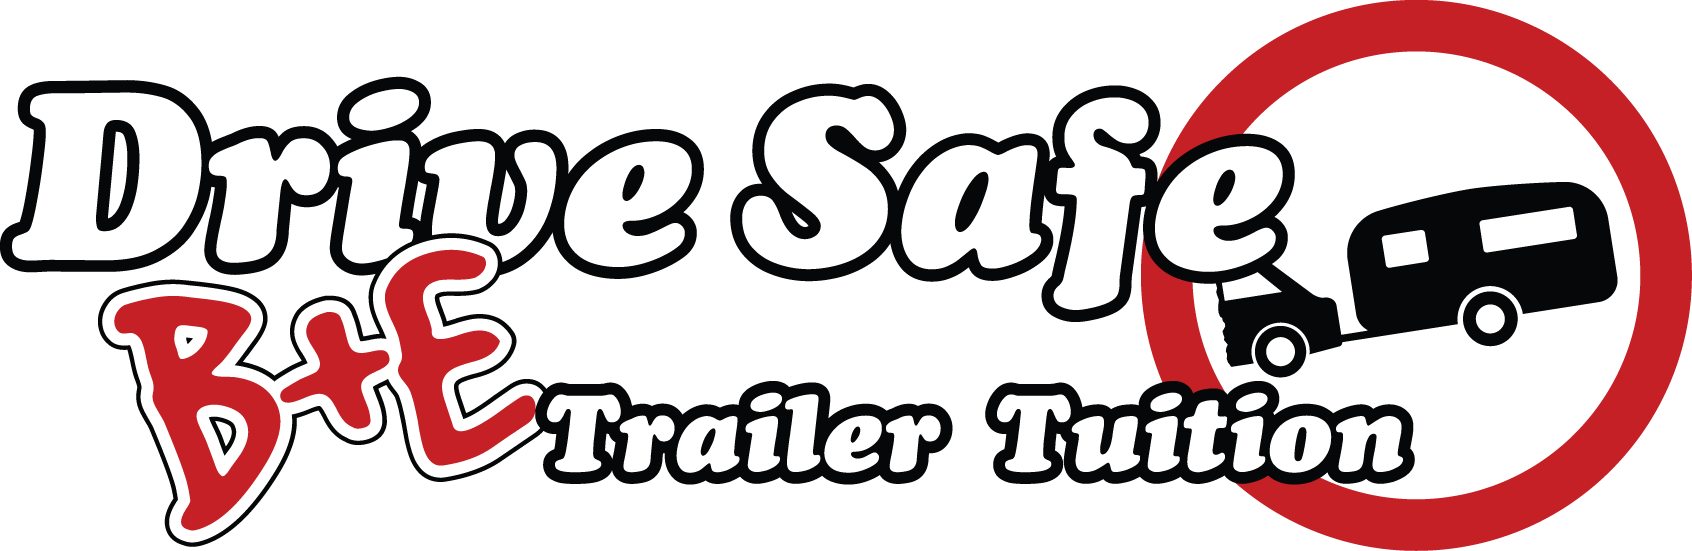 Drive Safe Driving School B E Trailer Towing Tuition.